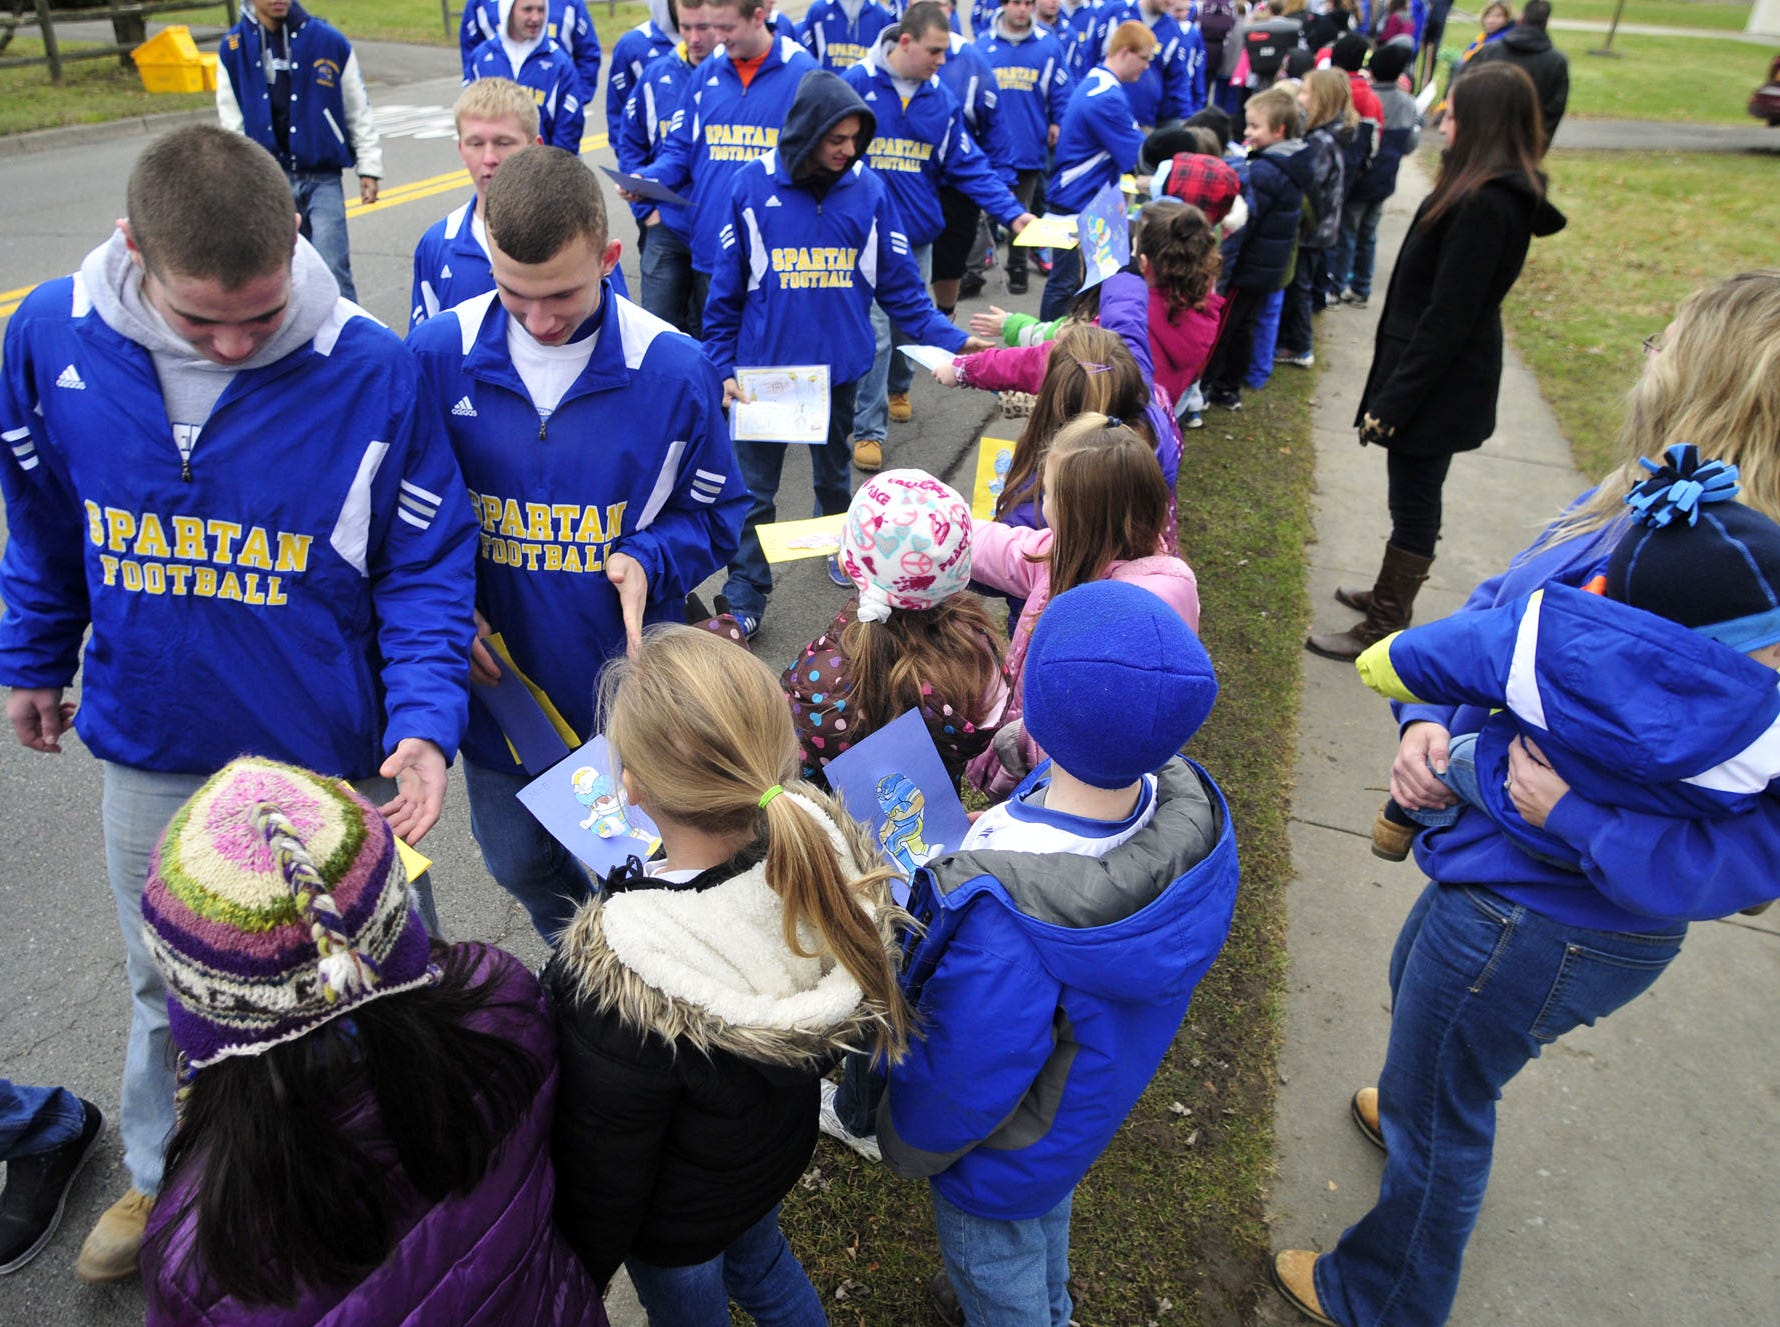 Members of the Maine-Endwell football team high fives fellow students as they walk towards downtown Endwell during a 2012 parade of champions.